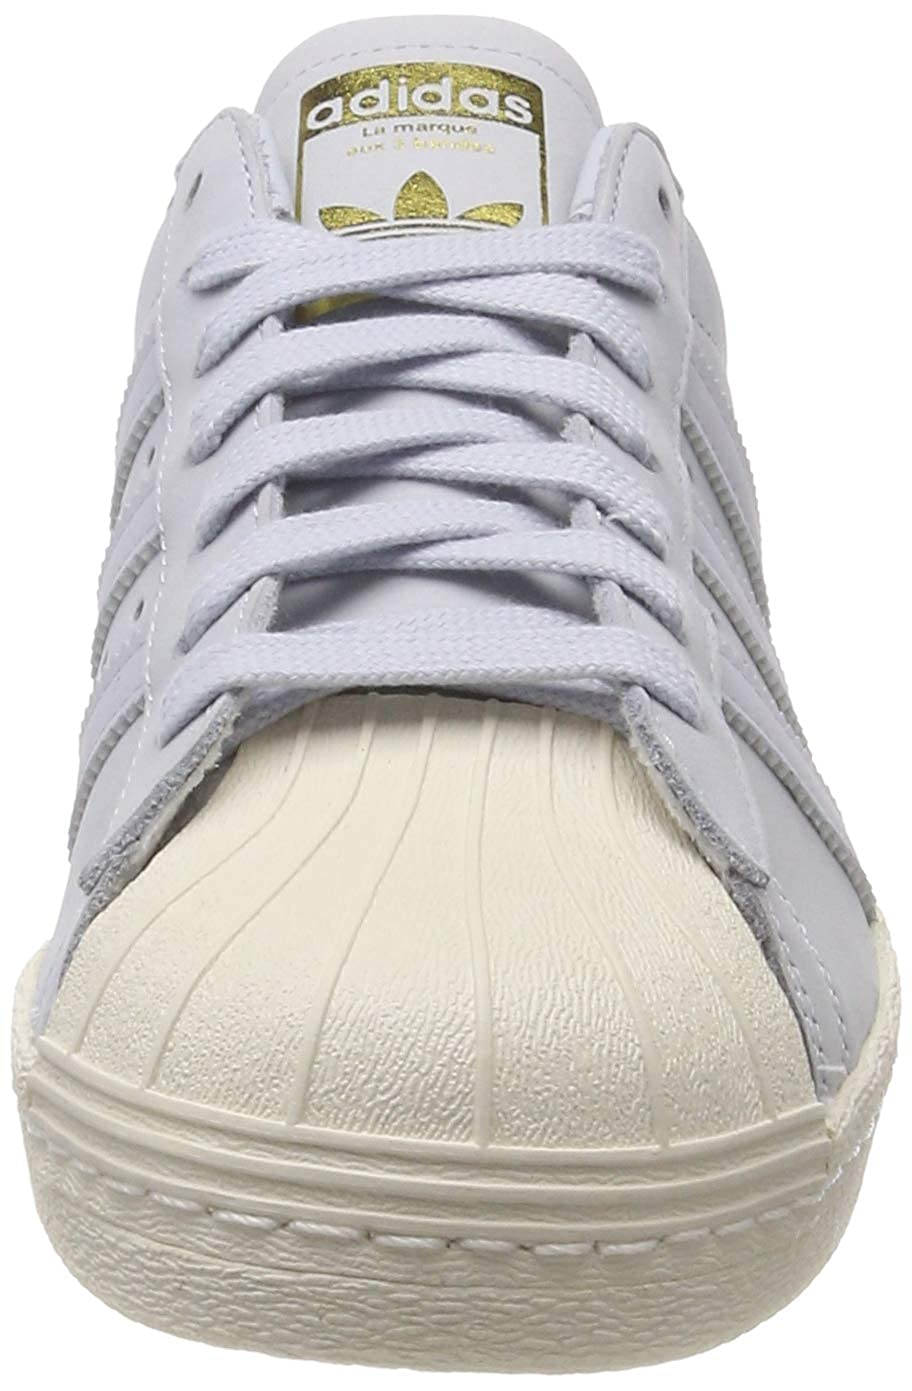 outlet store a2ab3 84cc7 Amazon.com | adidas Women's Superstar 80s Low-Top Sneakers ...